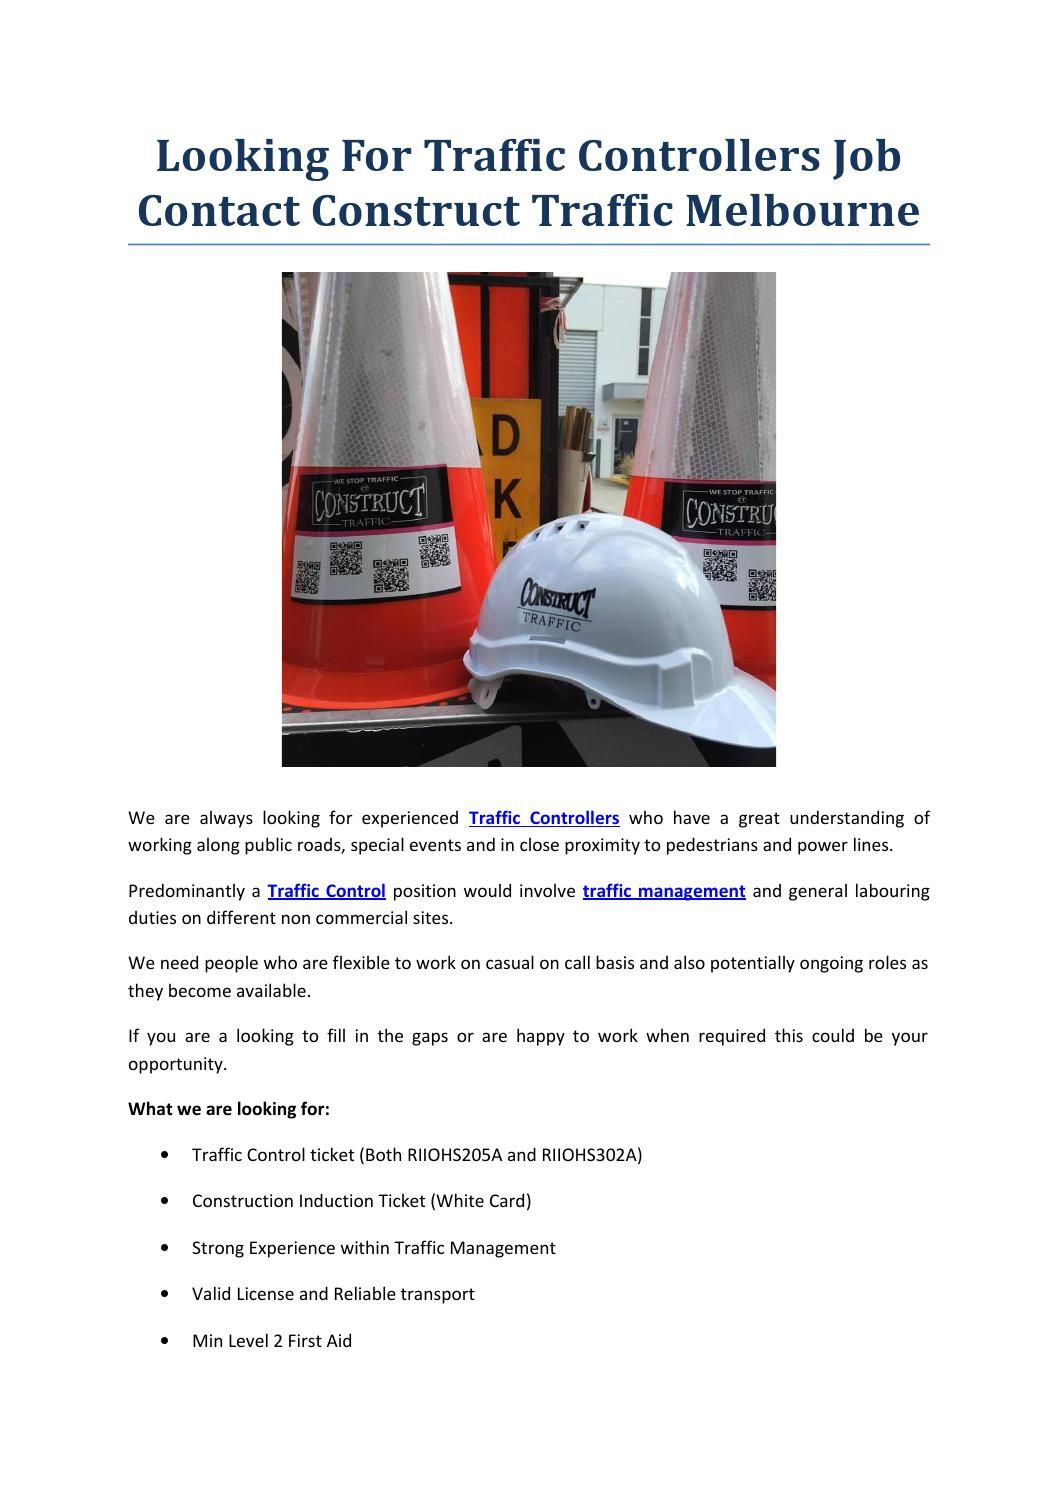 Looking for traffic controllers job contact construct